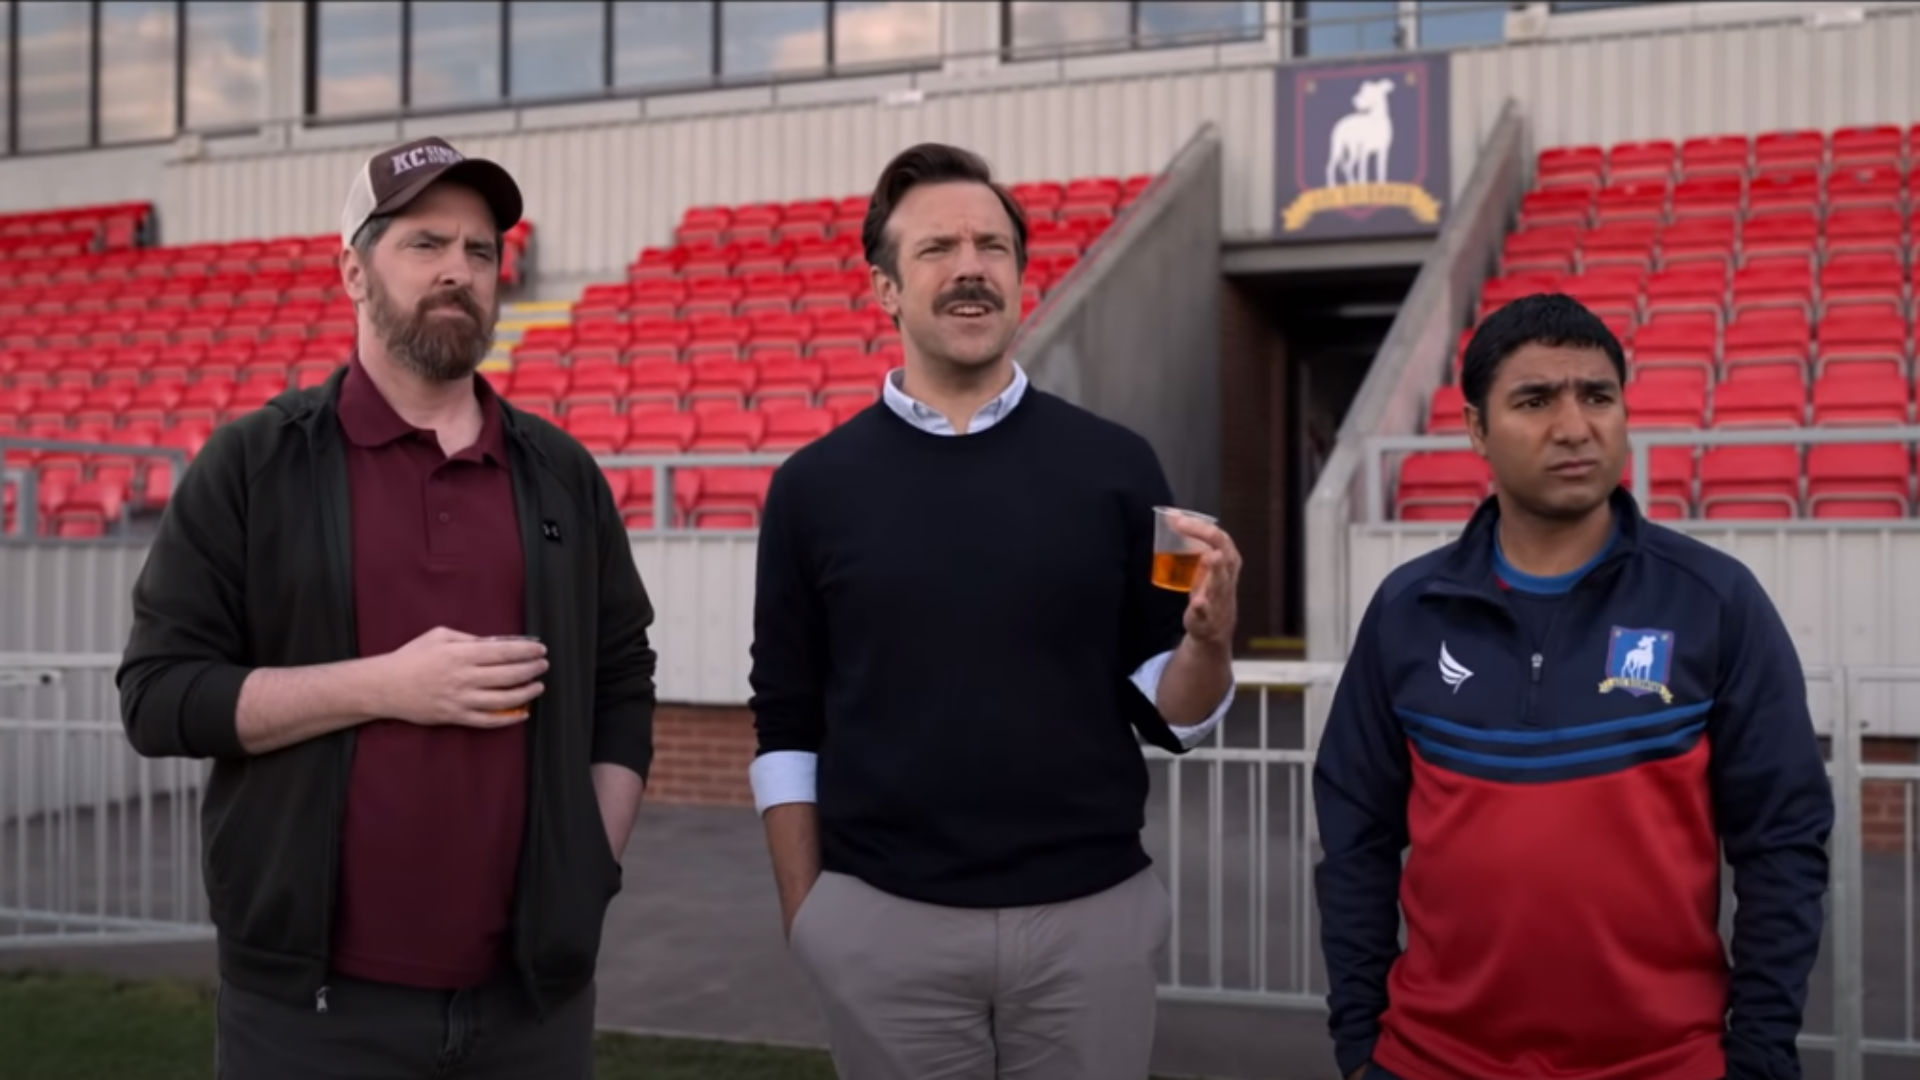 Ted Lasso viewer's guide: How to watch episodes of TV's best sports comedy series